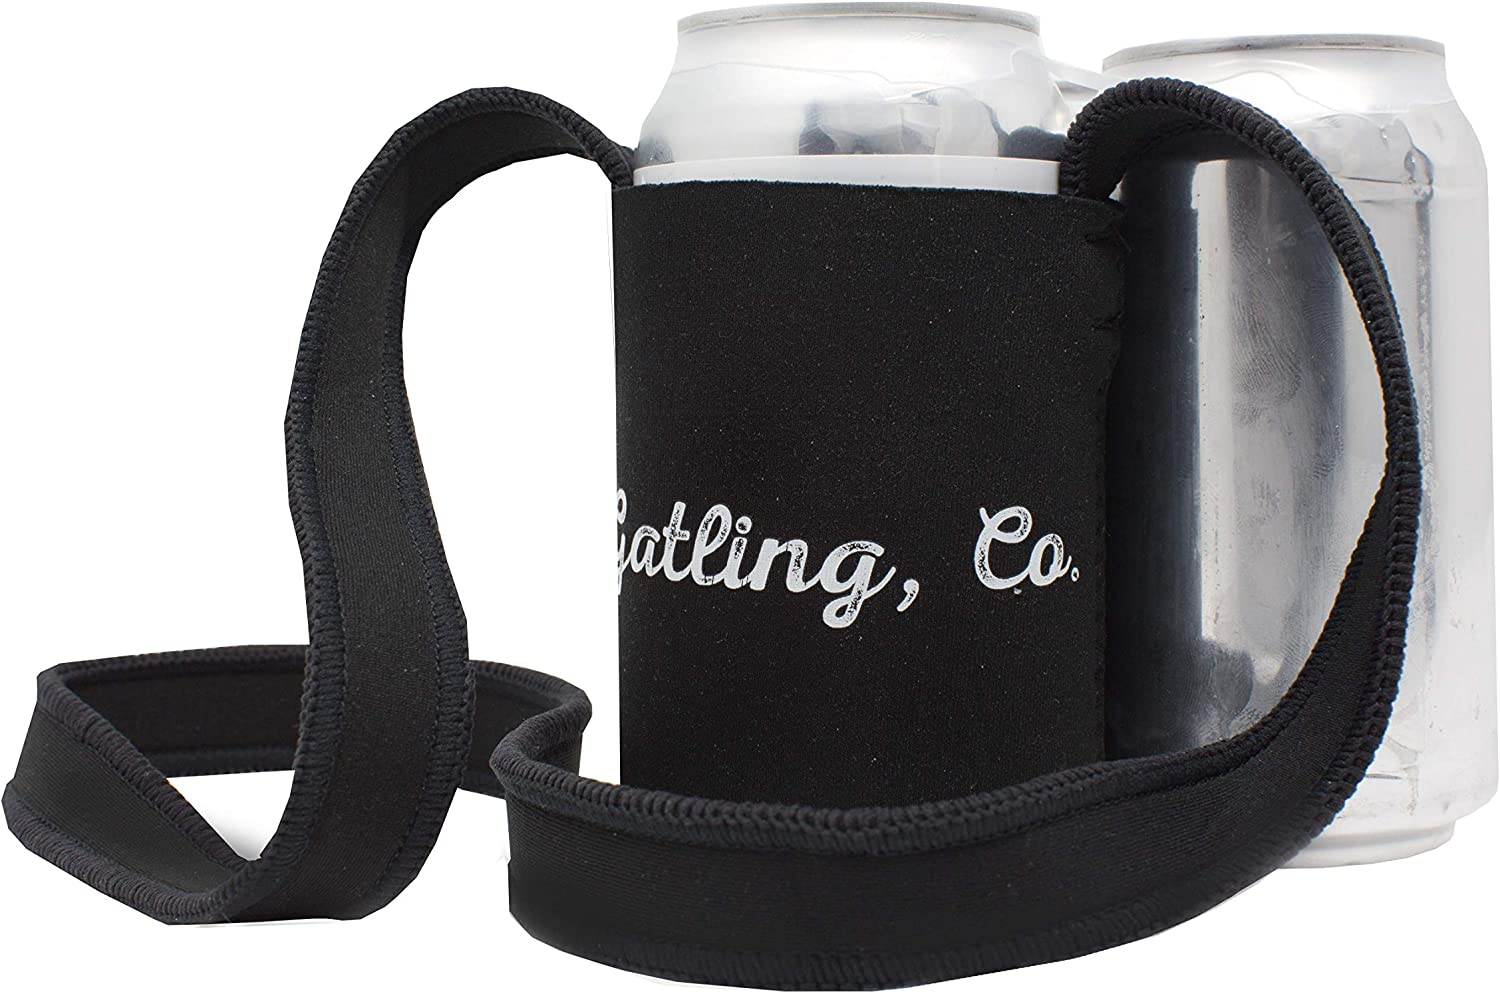 GATLING, CO. 4-Pack Hands-Free Insulated Drink Coolie, Can Cooler with Adjustable Neck Strap